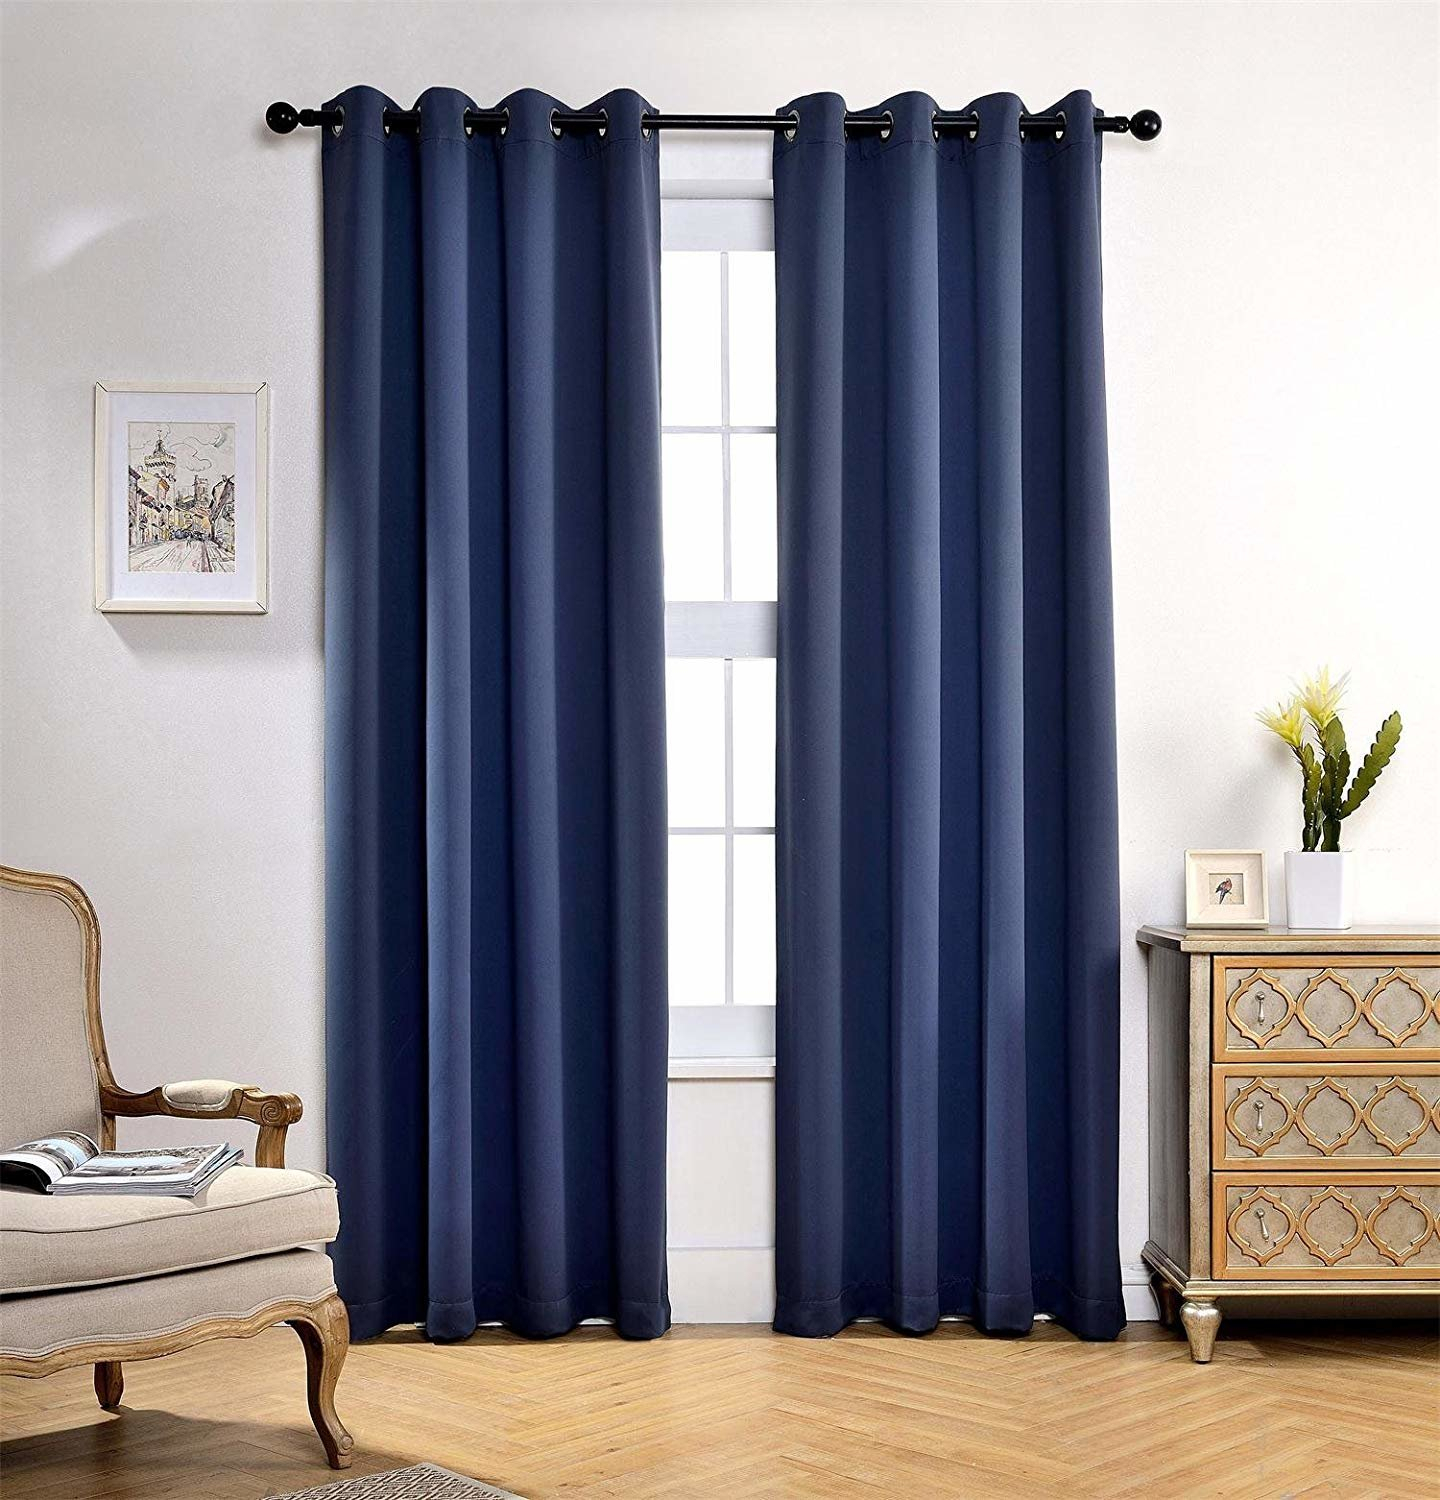 The 5 Best Blackout Curtains, According To Reviewers | Bob Vila For All Seasons Blackout Window Curtains (Image 18 of 20)